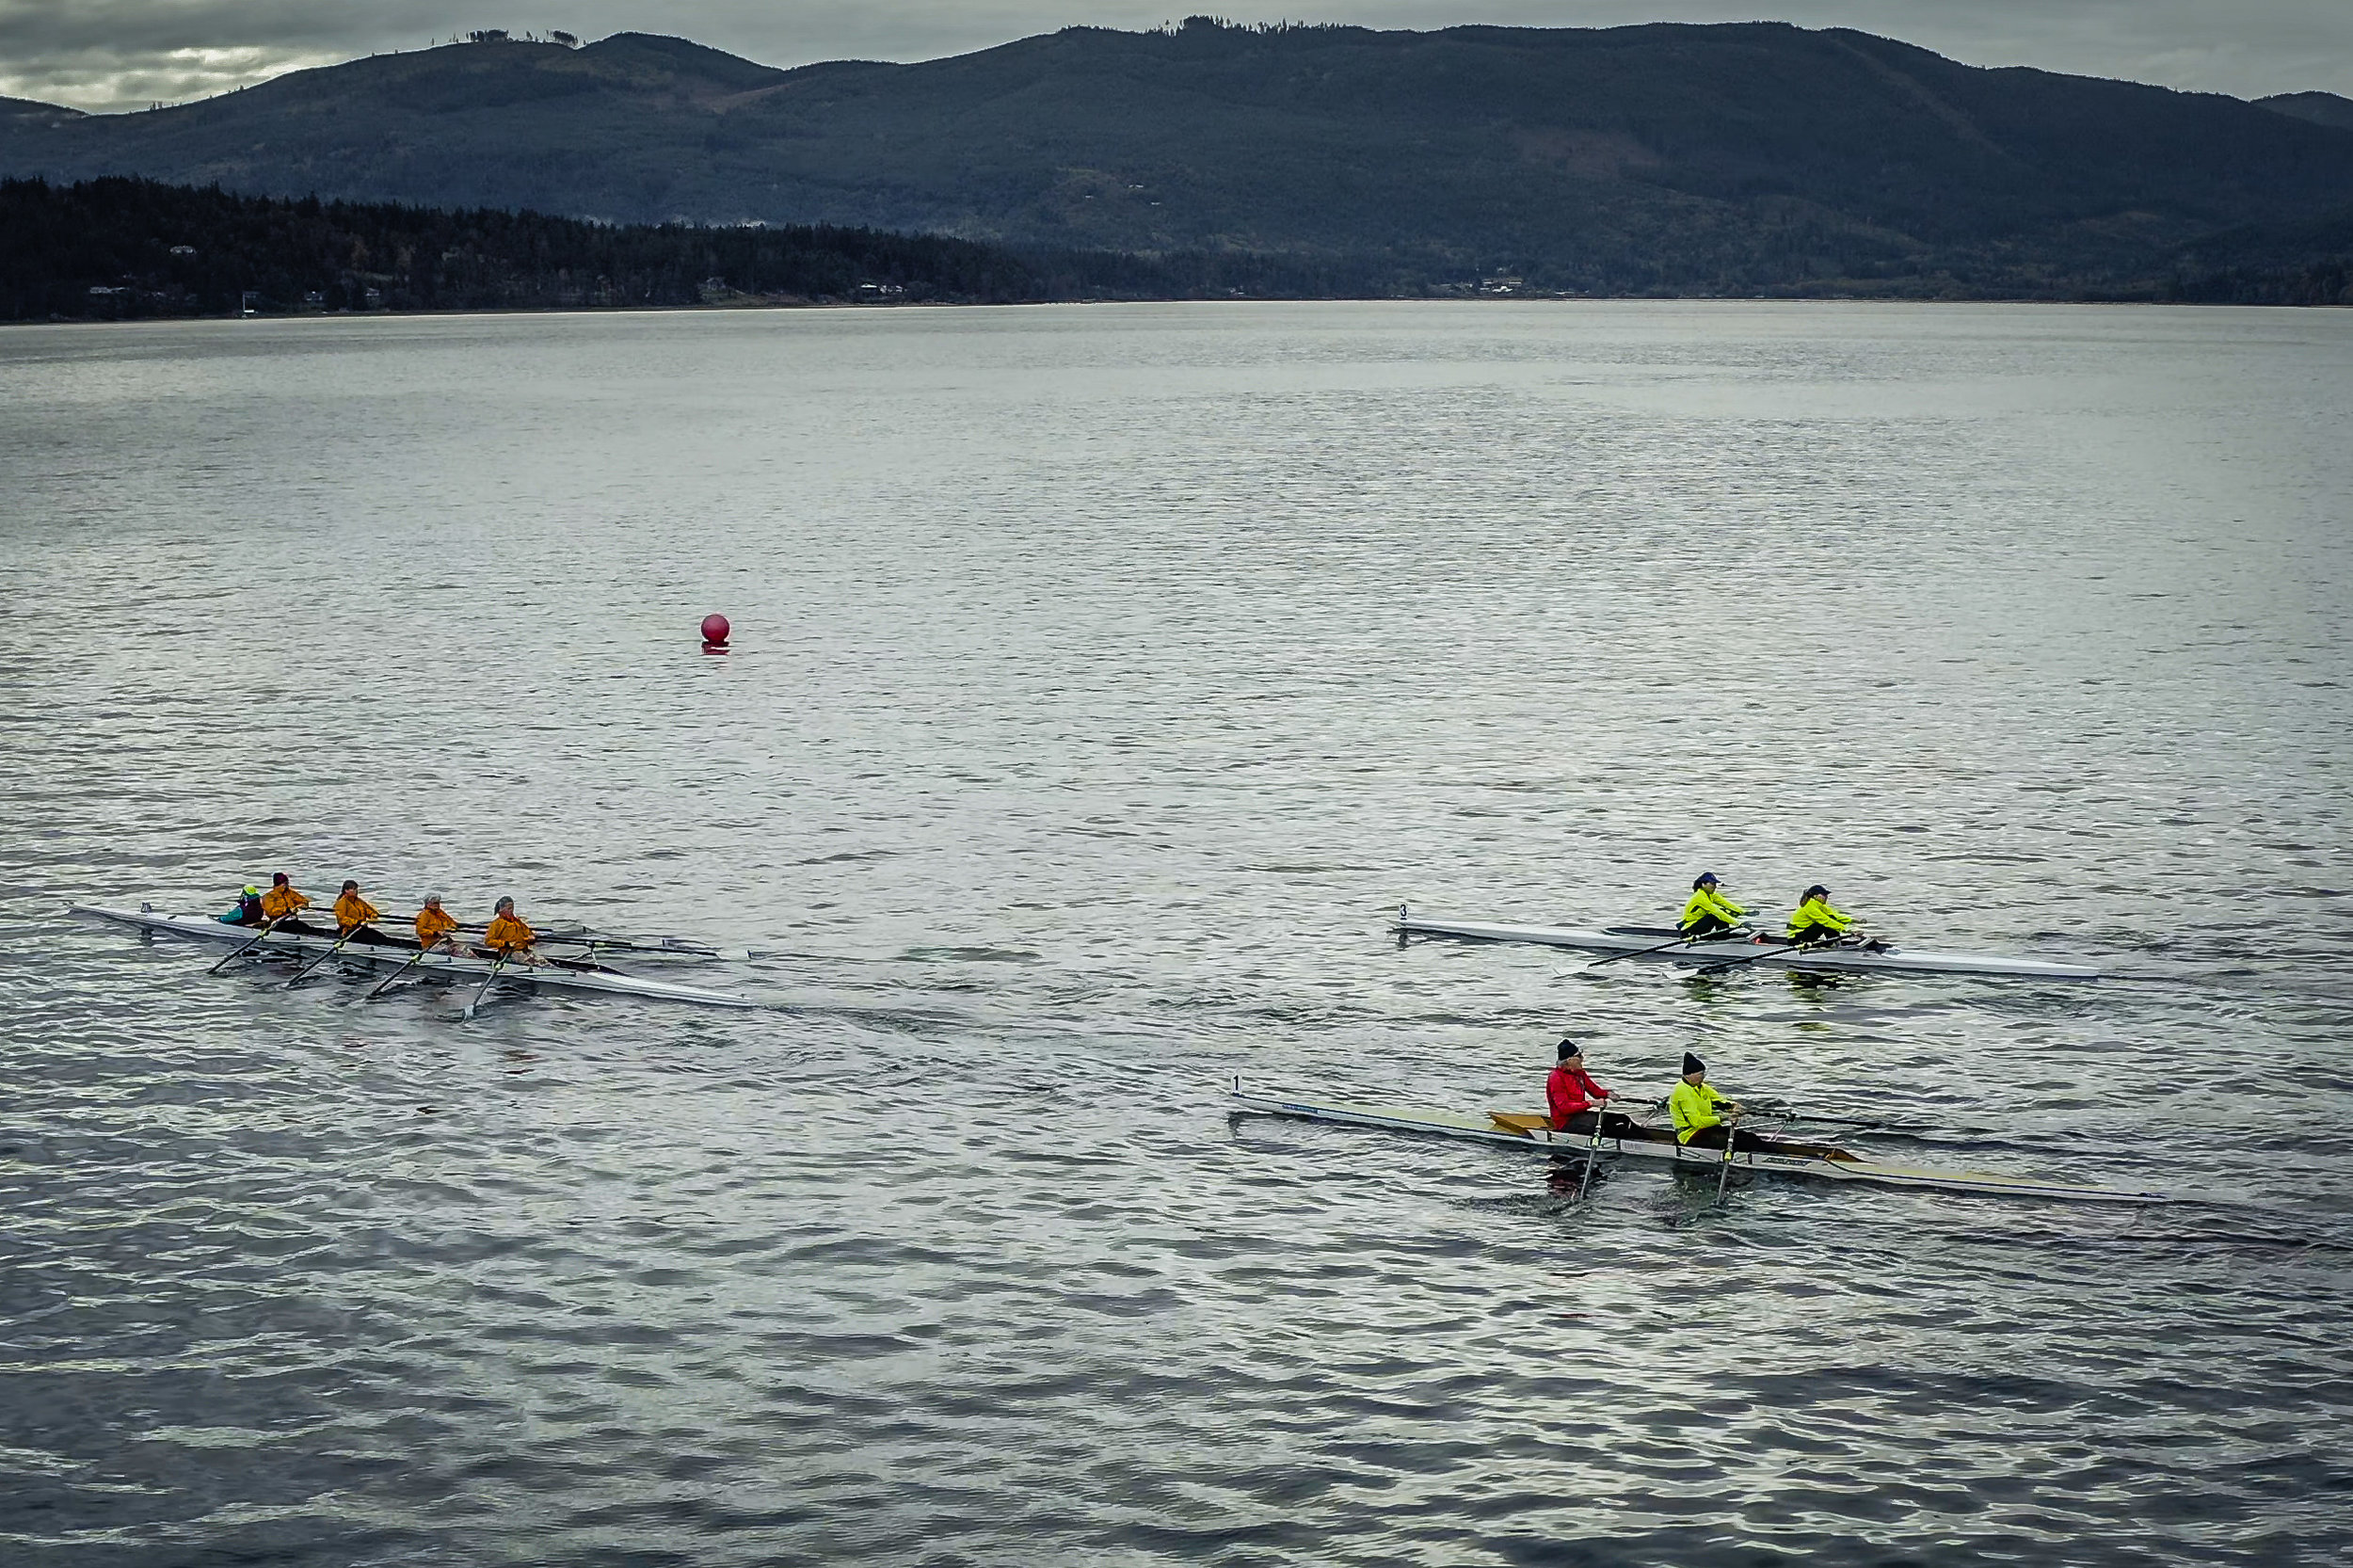 """Thirty-four rowers and paddlers in 18 craft from Sequim, Port Townsend and Port Angeles helped raise thousands of dollars for Volunteer Hospice of Clallam County in Sunday's (Sept. 29) race, the second half of Sequim Bay Yacht Club's Reach and Row for Hospice event. This was the 27th fundraiser, established as a sailing race in the 1990s and expanded in 2018 to include a rowing and paddling competition. Pictured from left, Tuf As Nails, a women's Port Townsend team, Two Old, Sequim and Port Townsend rowers (foreground) and Tennis Bracelet, a women's SBYC team, both from Sequim. Overall winners were Sandra Wanstall of Port Townsend, Alan Clark, Sequim, second; Charley Kanienski, Port Townsend, third; and Tuf As Nails, fourth. SBYC, which has raised more than $360,000 for VHOCC in the past quarter century, continues its fundraising through Dec. 31. Contributions can be sent directly to VHOCC, 829 East 8th Street, Port Angeles WA 98362 with """"Reach and Row for Hospice""""in the memo line of checks. Photo by Dave Pitman, Olympic Aerial Solutions"""